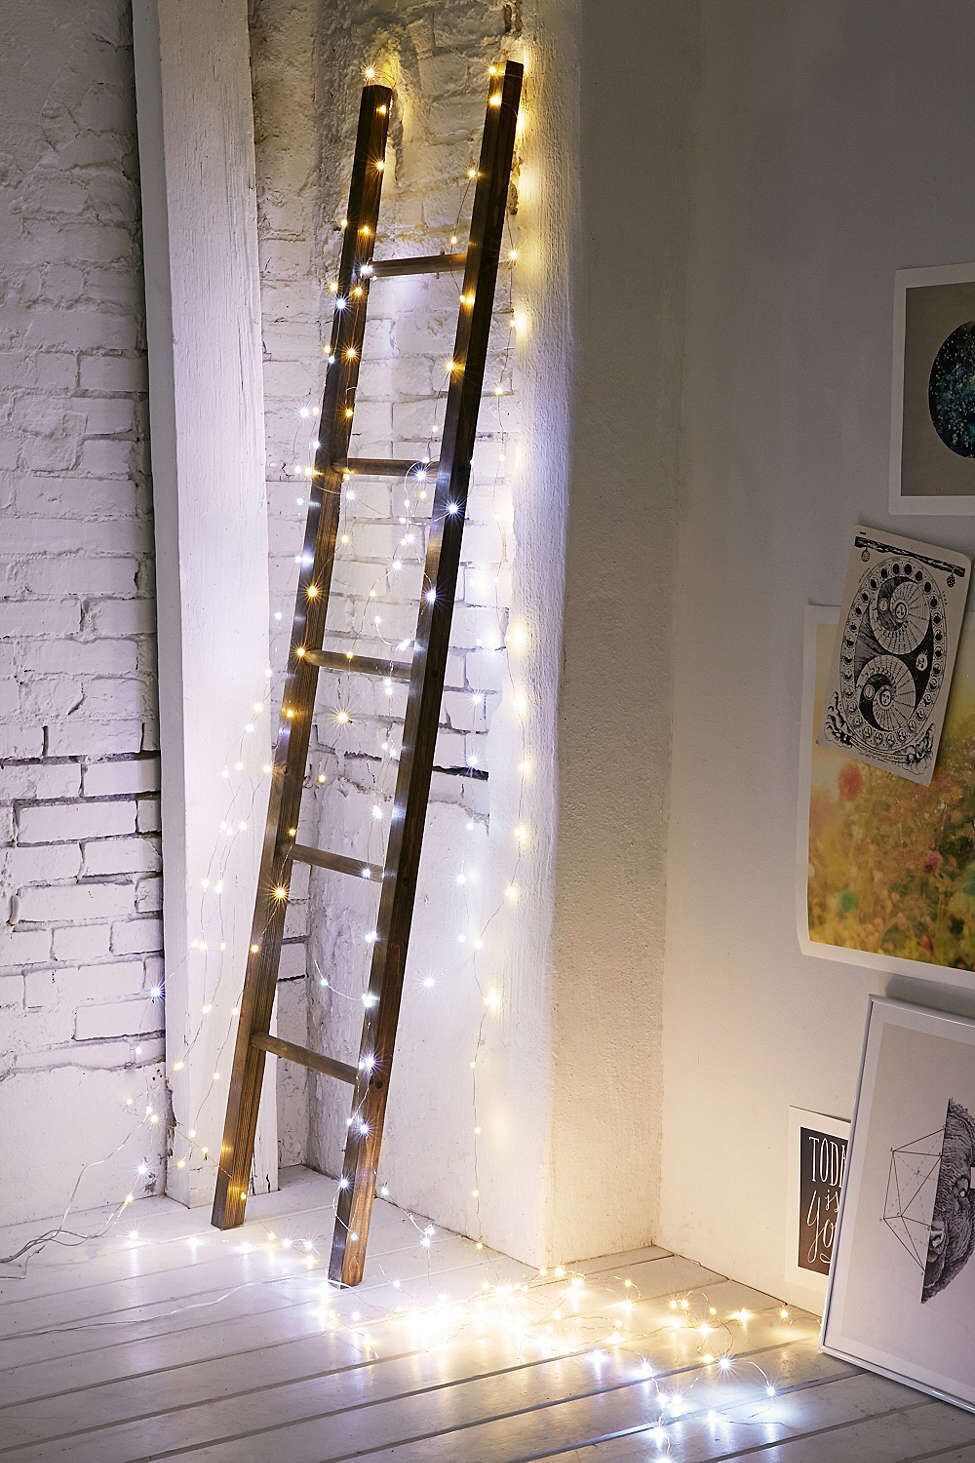 Use Antique Tools to Illuminate a Dark Corner